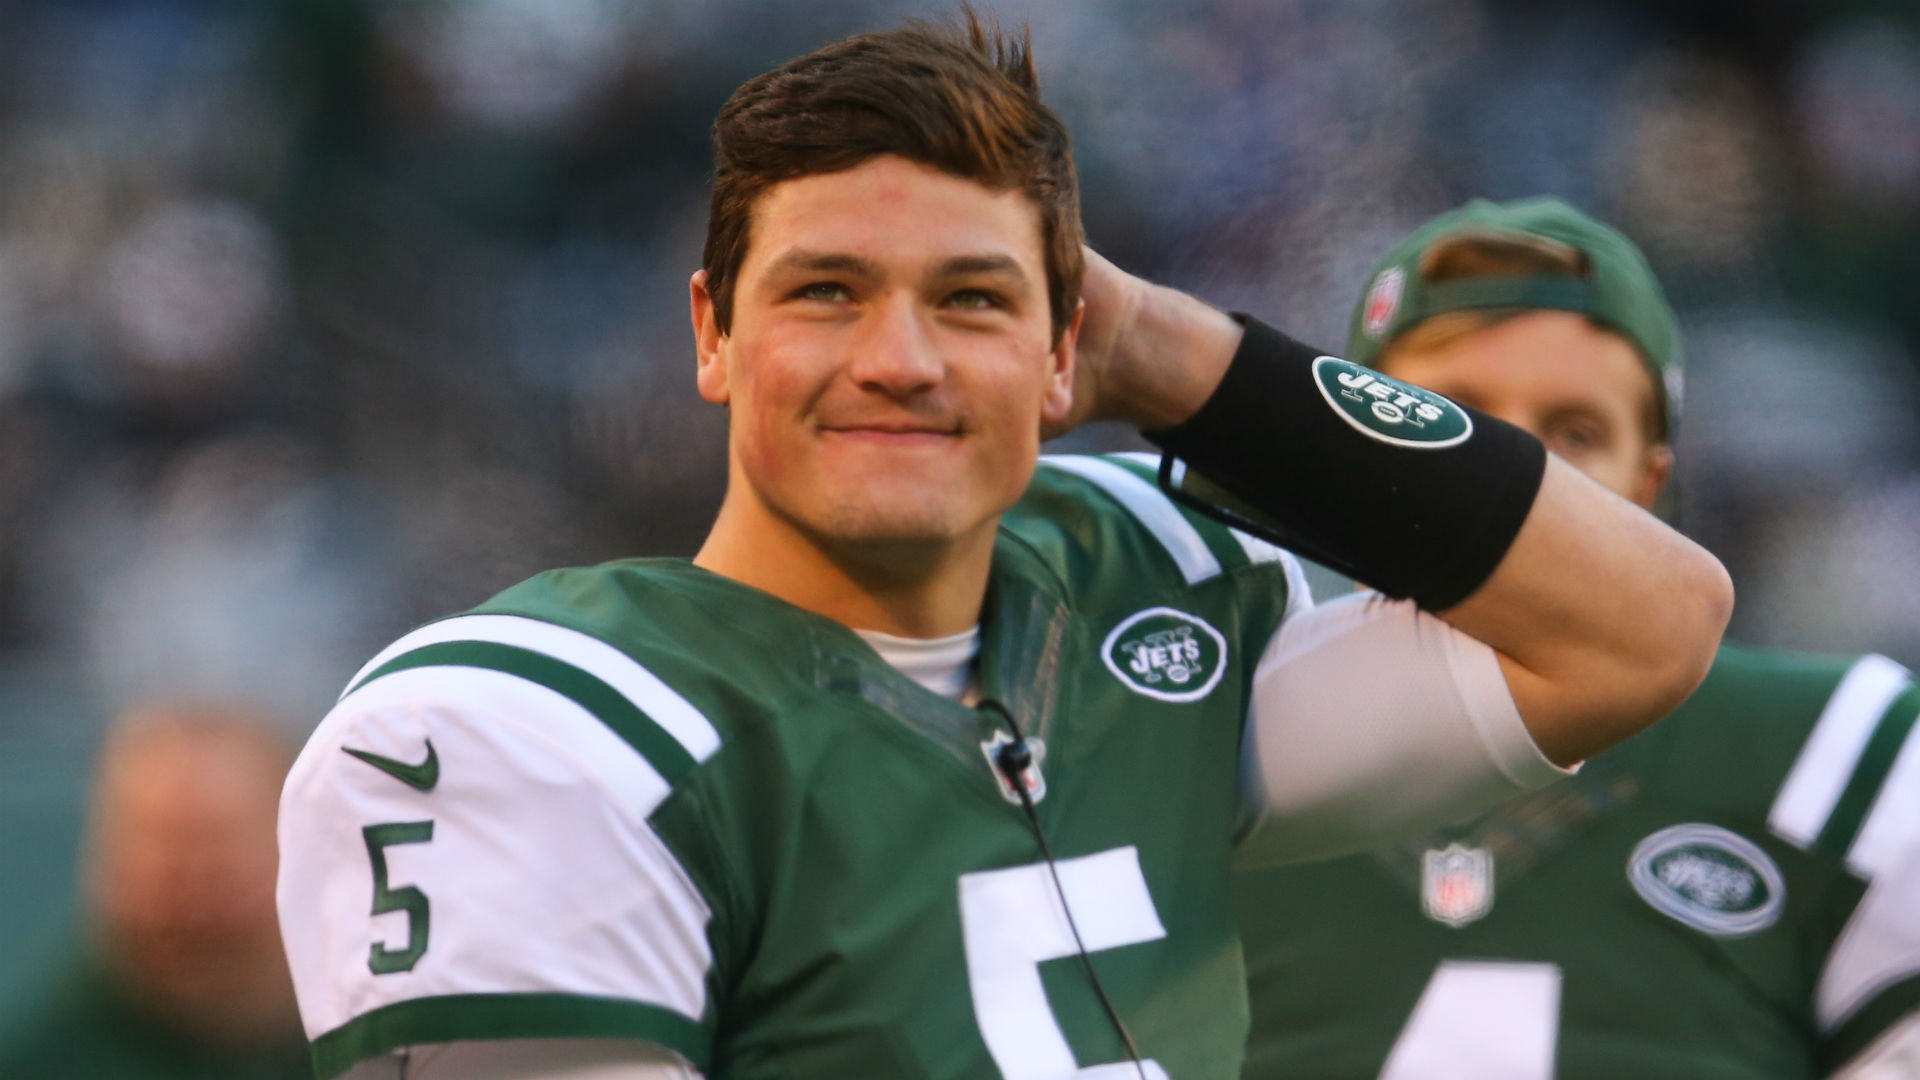 Here's Another Embarrassing Story About The Play Of Christian Hackenberg